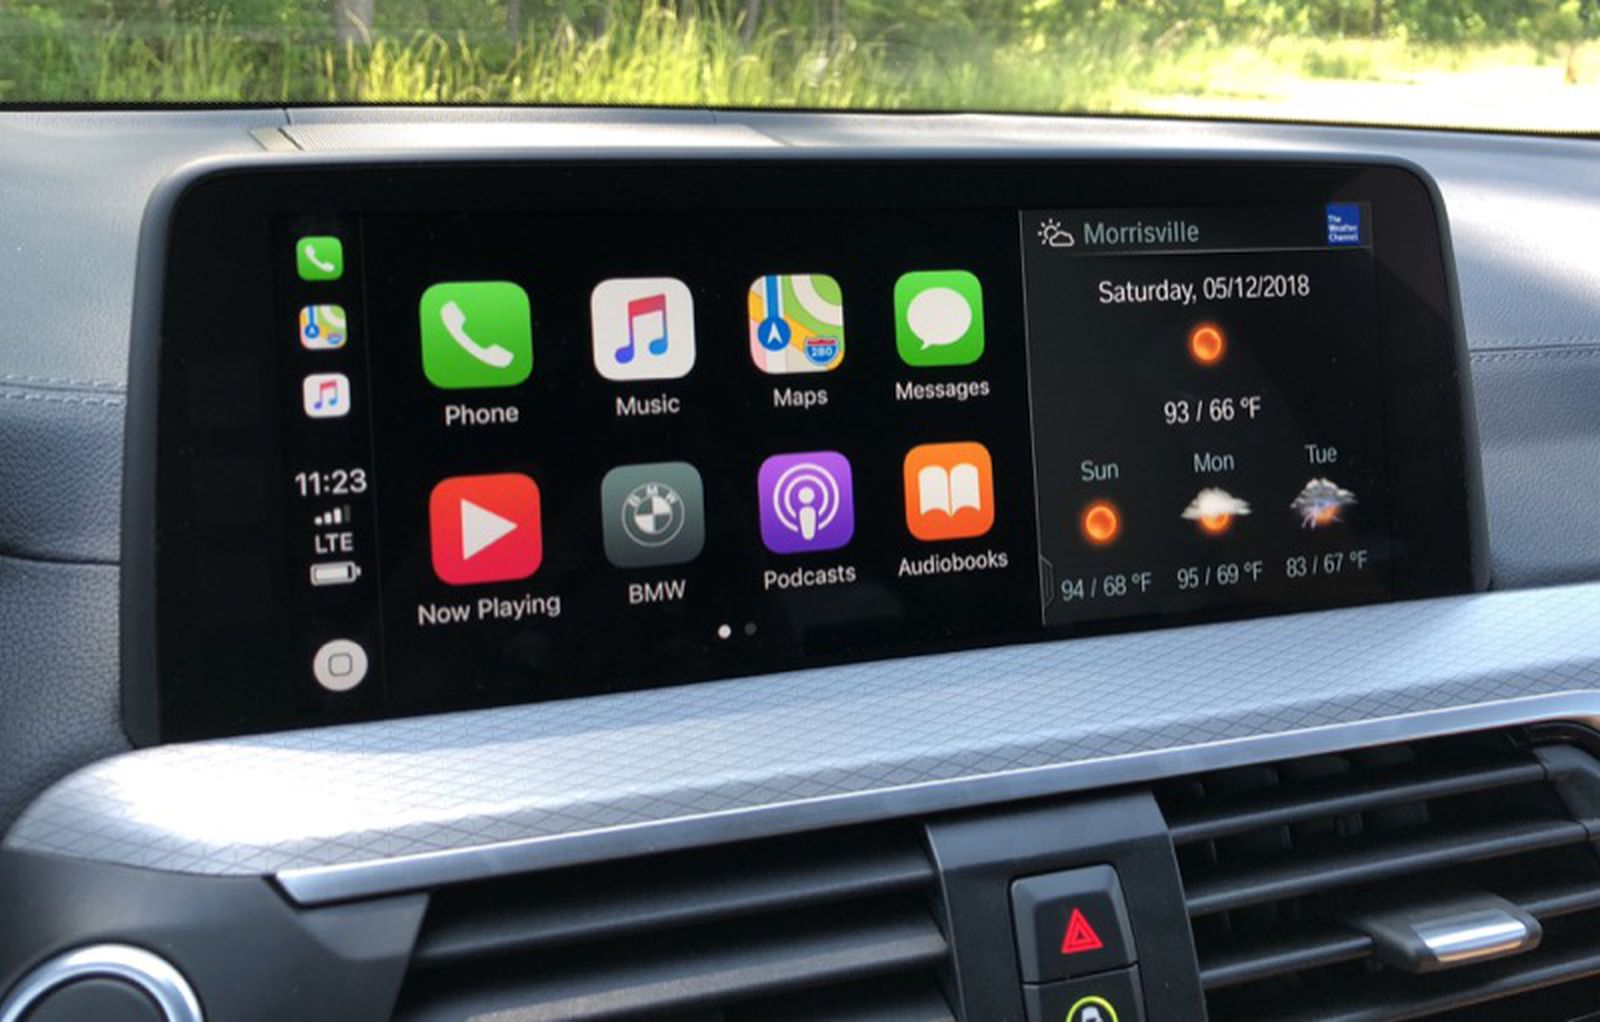 Bmw No Longer Charging Monthly Fee For Carplay In Cars With Newest Software Macrumors